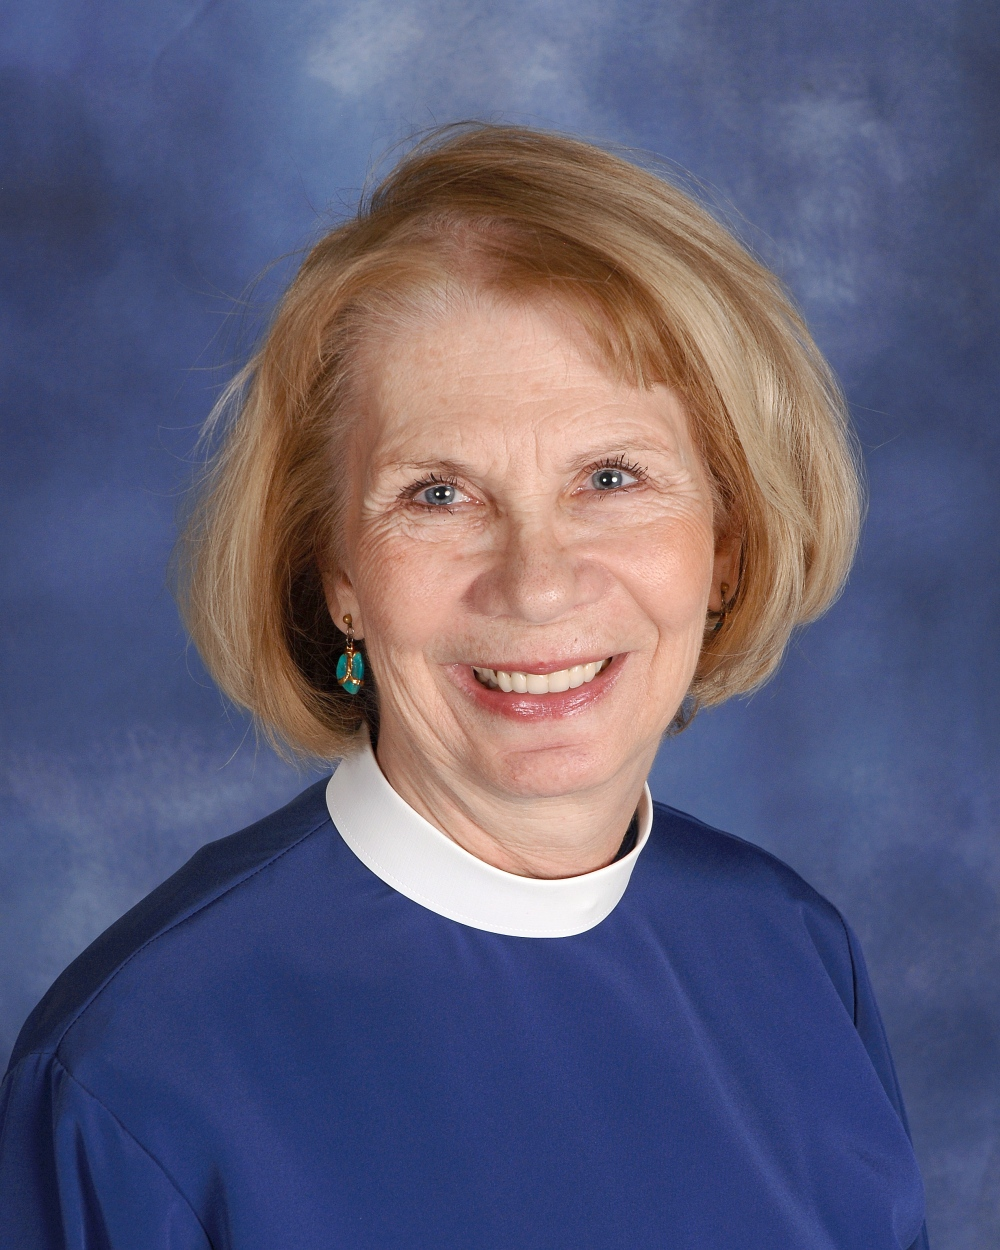 Photo of the Rev. Canon Christy Dorn